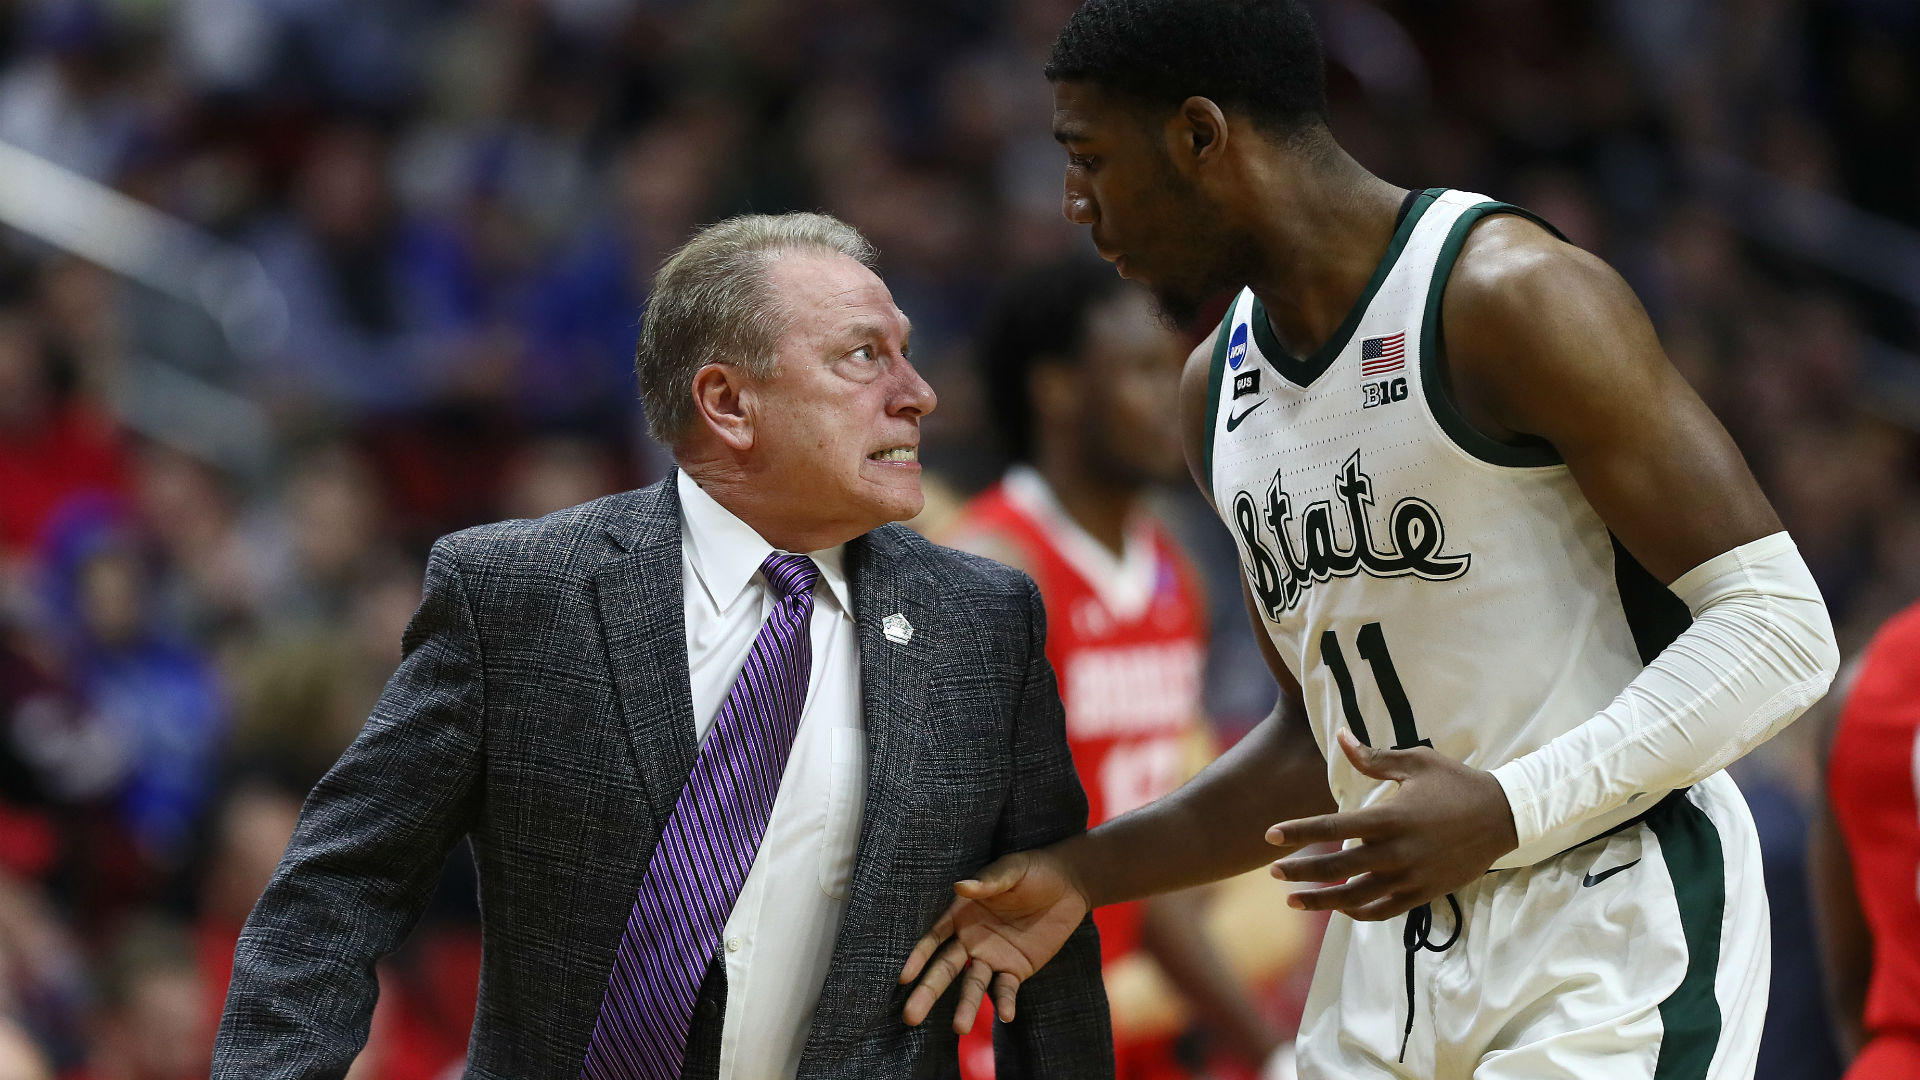 Draymond Green defends Michigan State's Tom Izzo after heated exchange with Aaron Henry